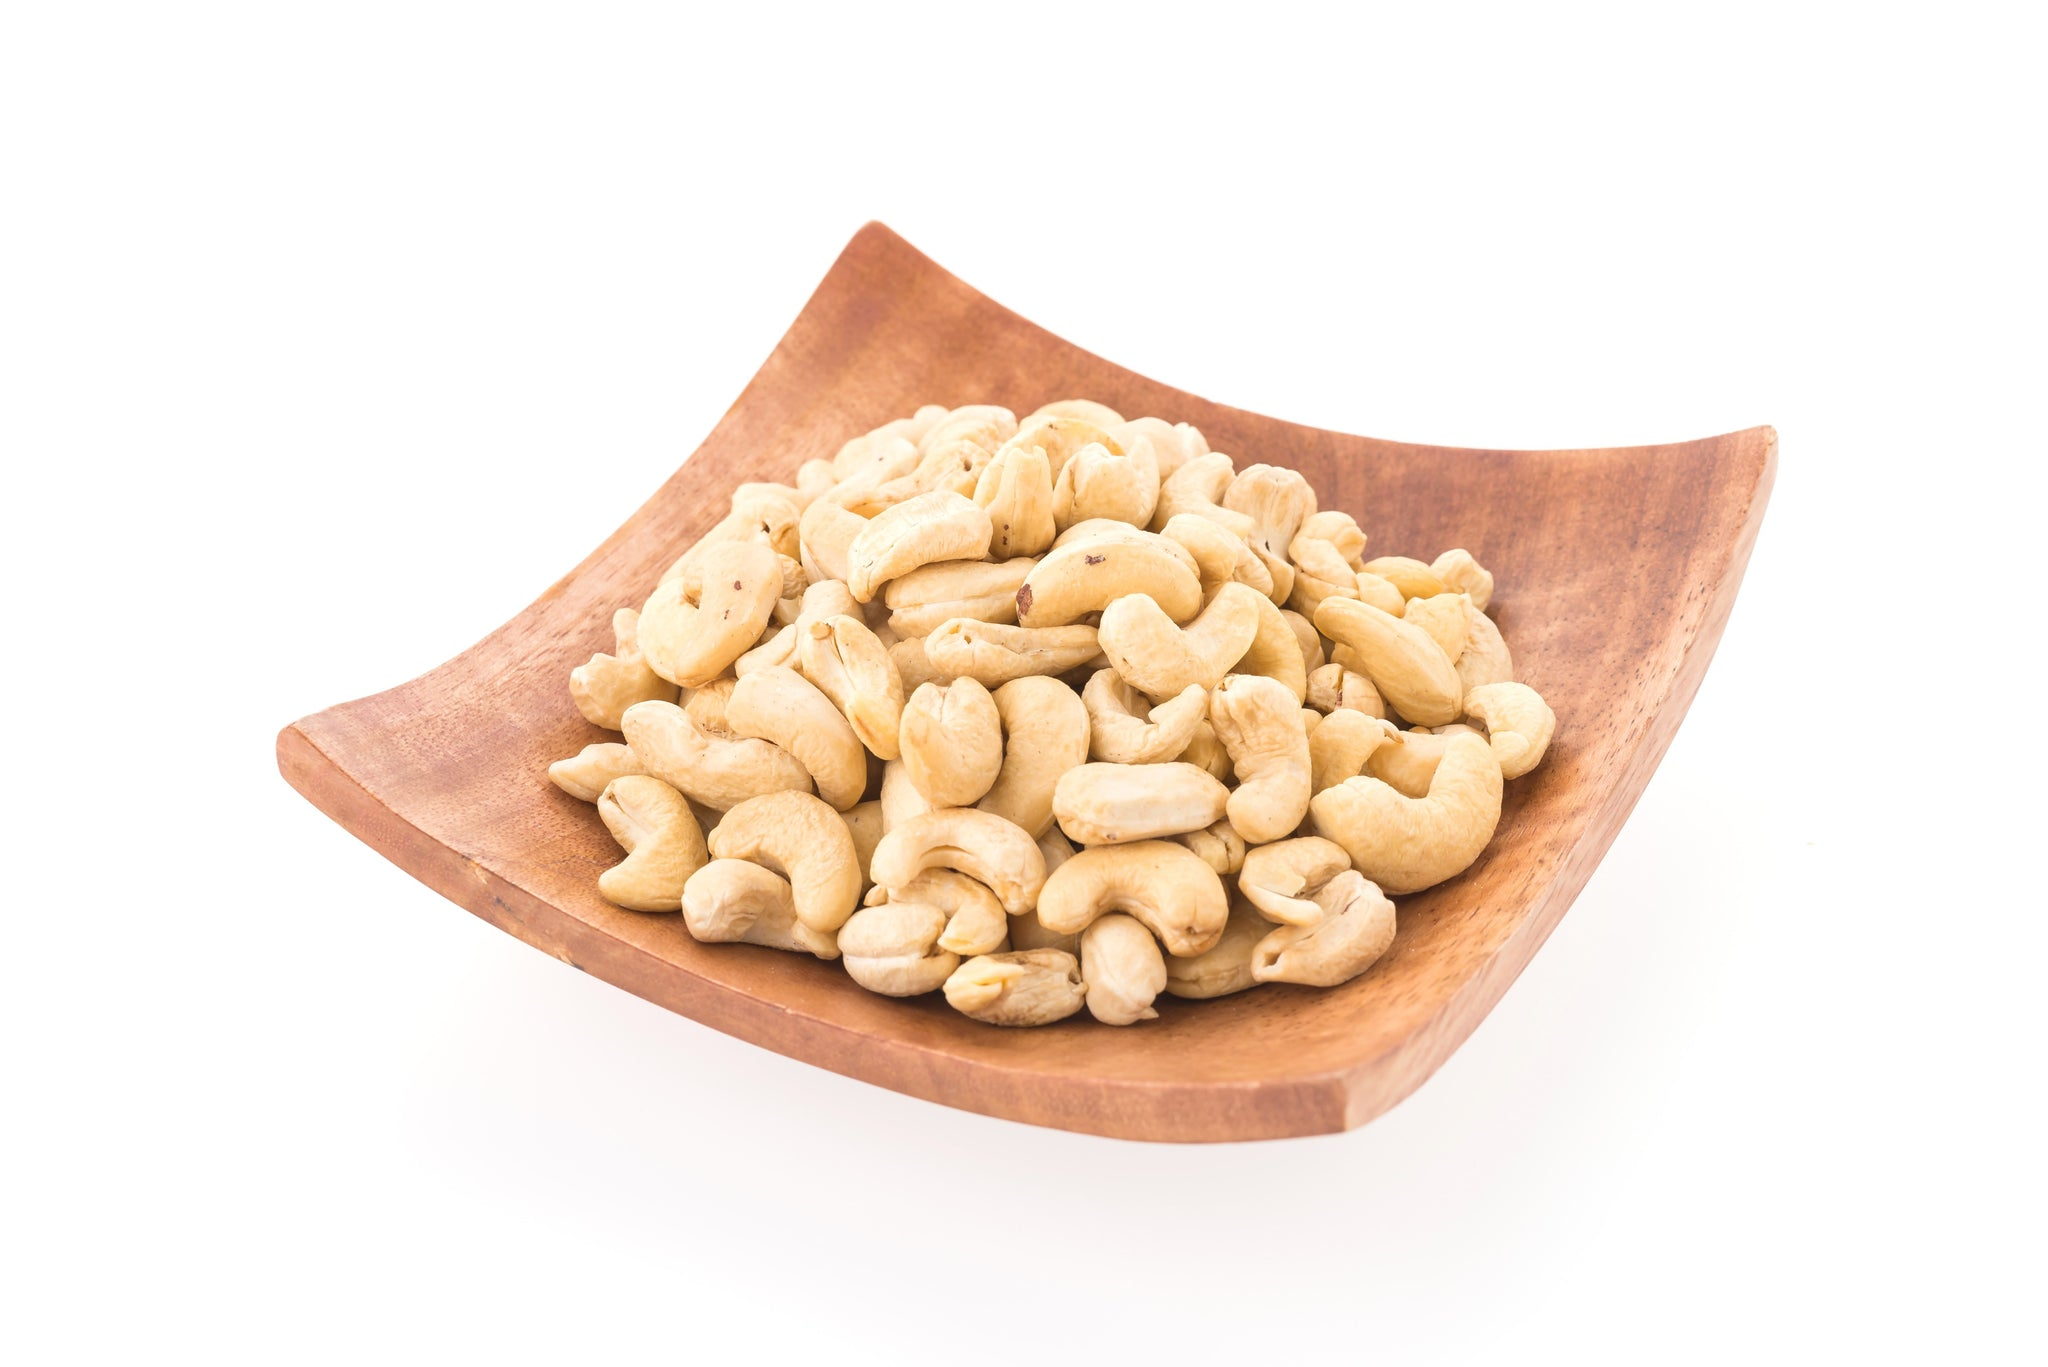 Pack of Cashew Nuts